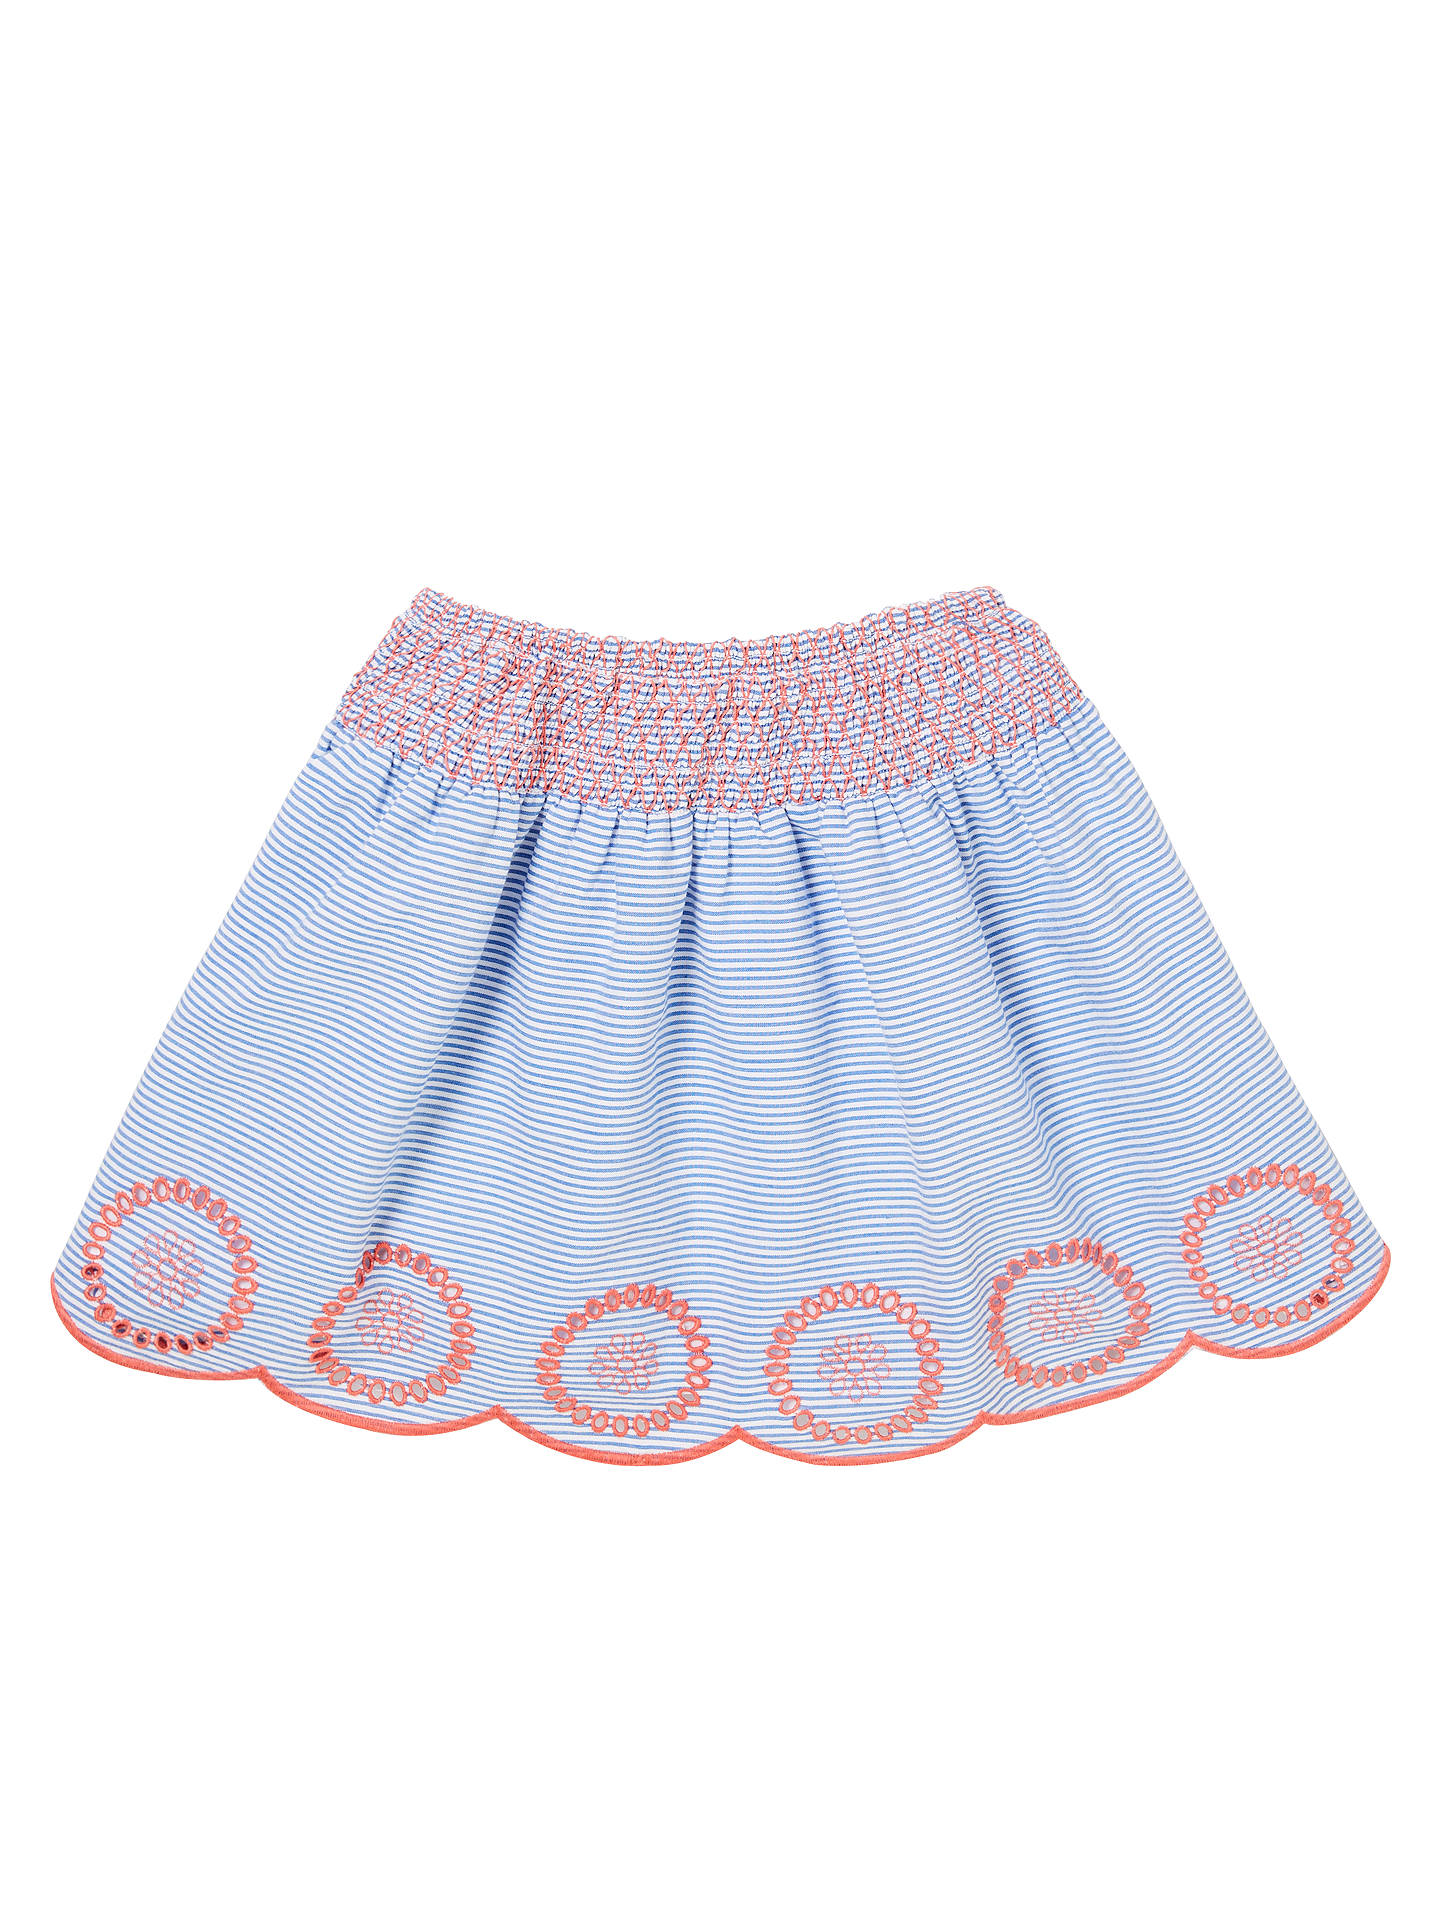 BuyJohn Lewis & Partners Girls' Ticking Stripe Skirt, Blue, 2 years Online at johnlewis.com